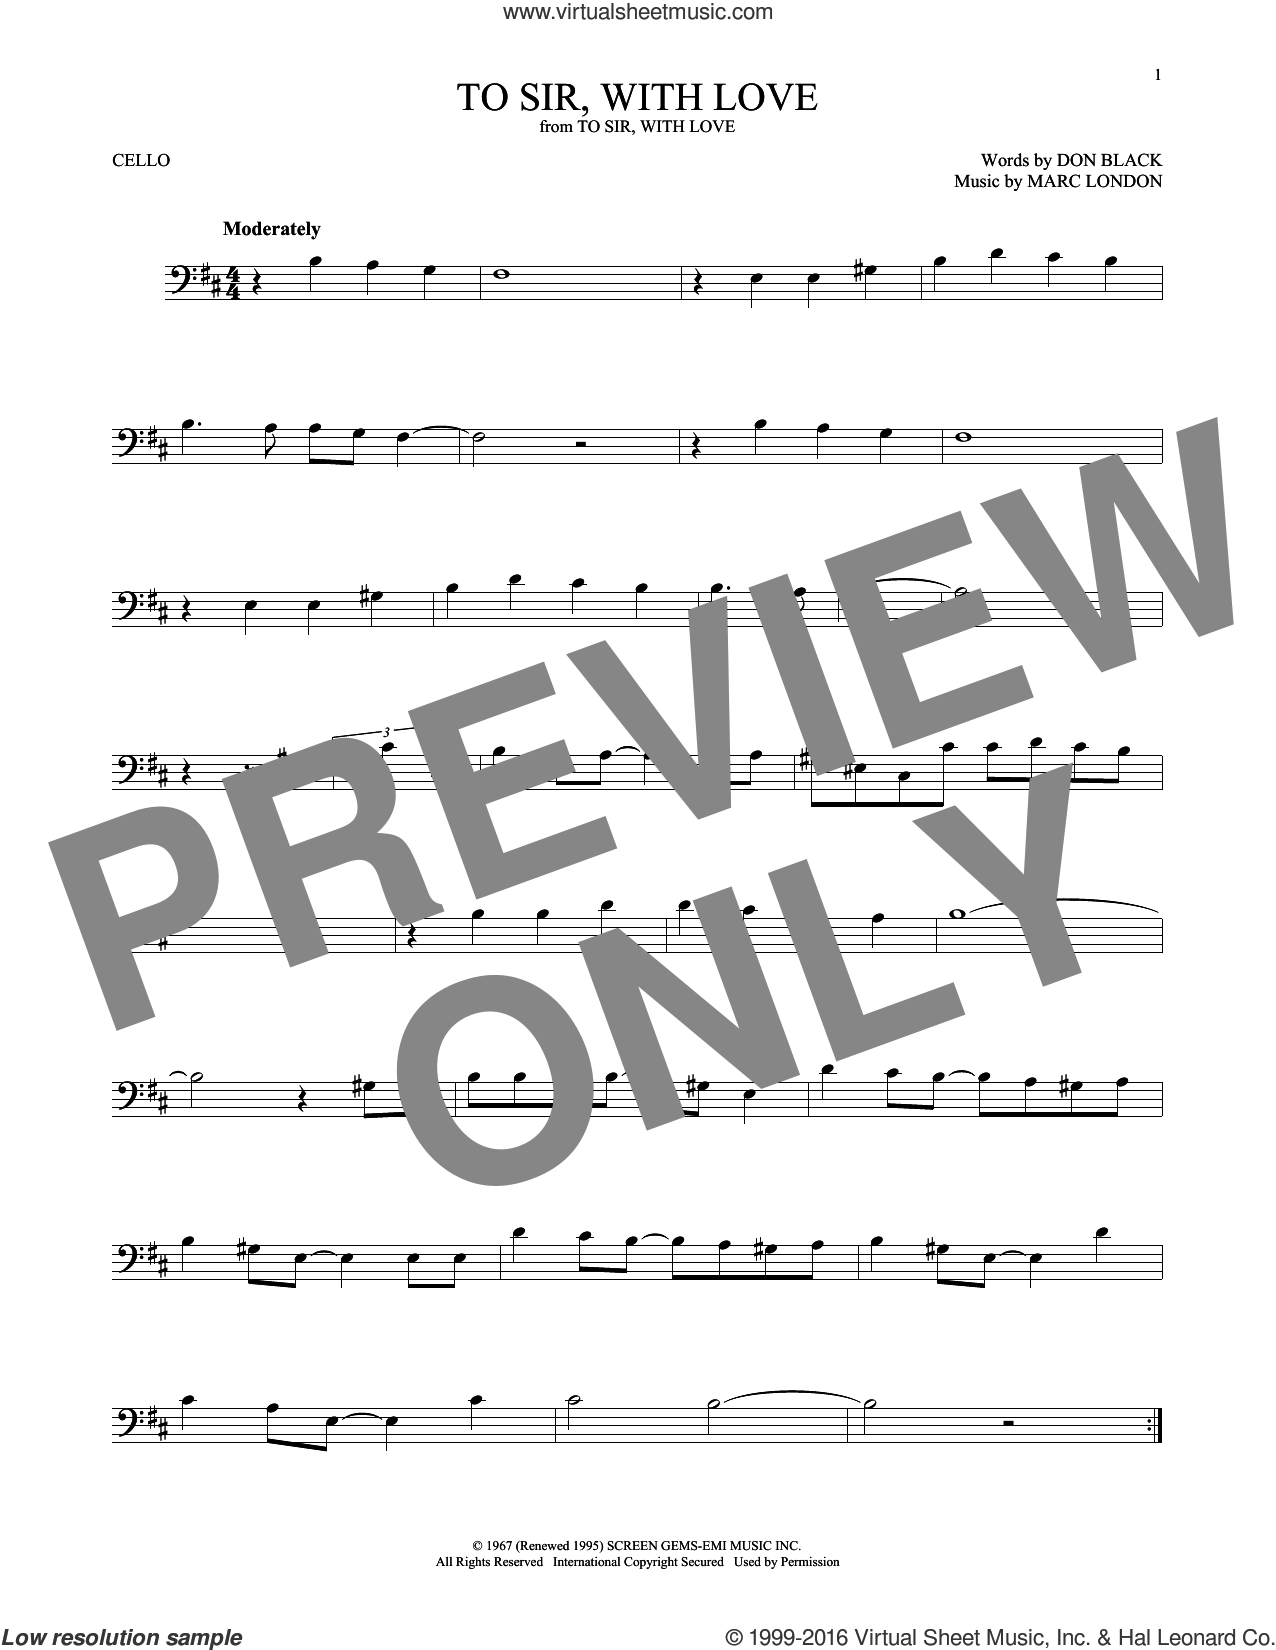 To Sir, With Love sheet music for cello solo by Lulu, Don Black and Marc London, intermediate skill level